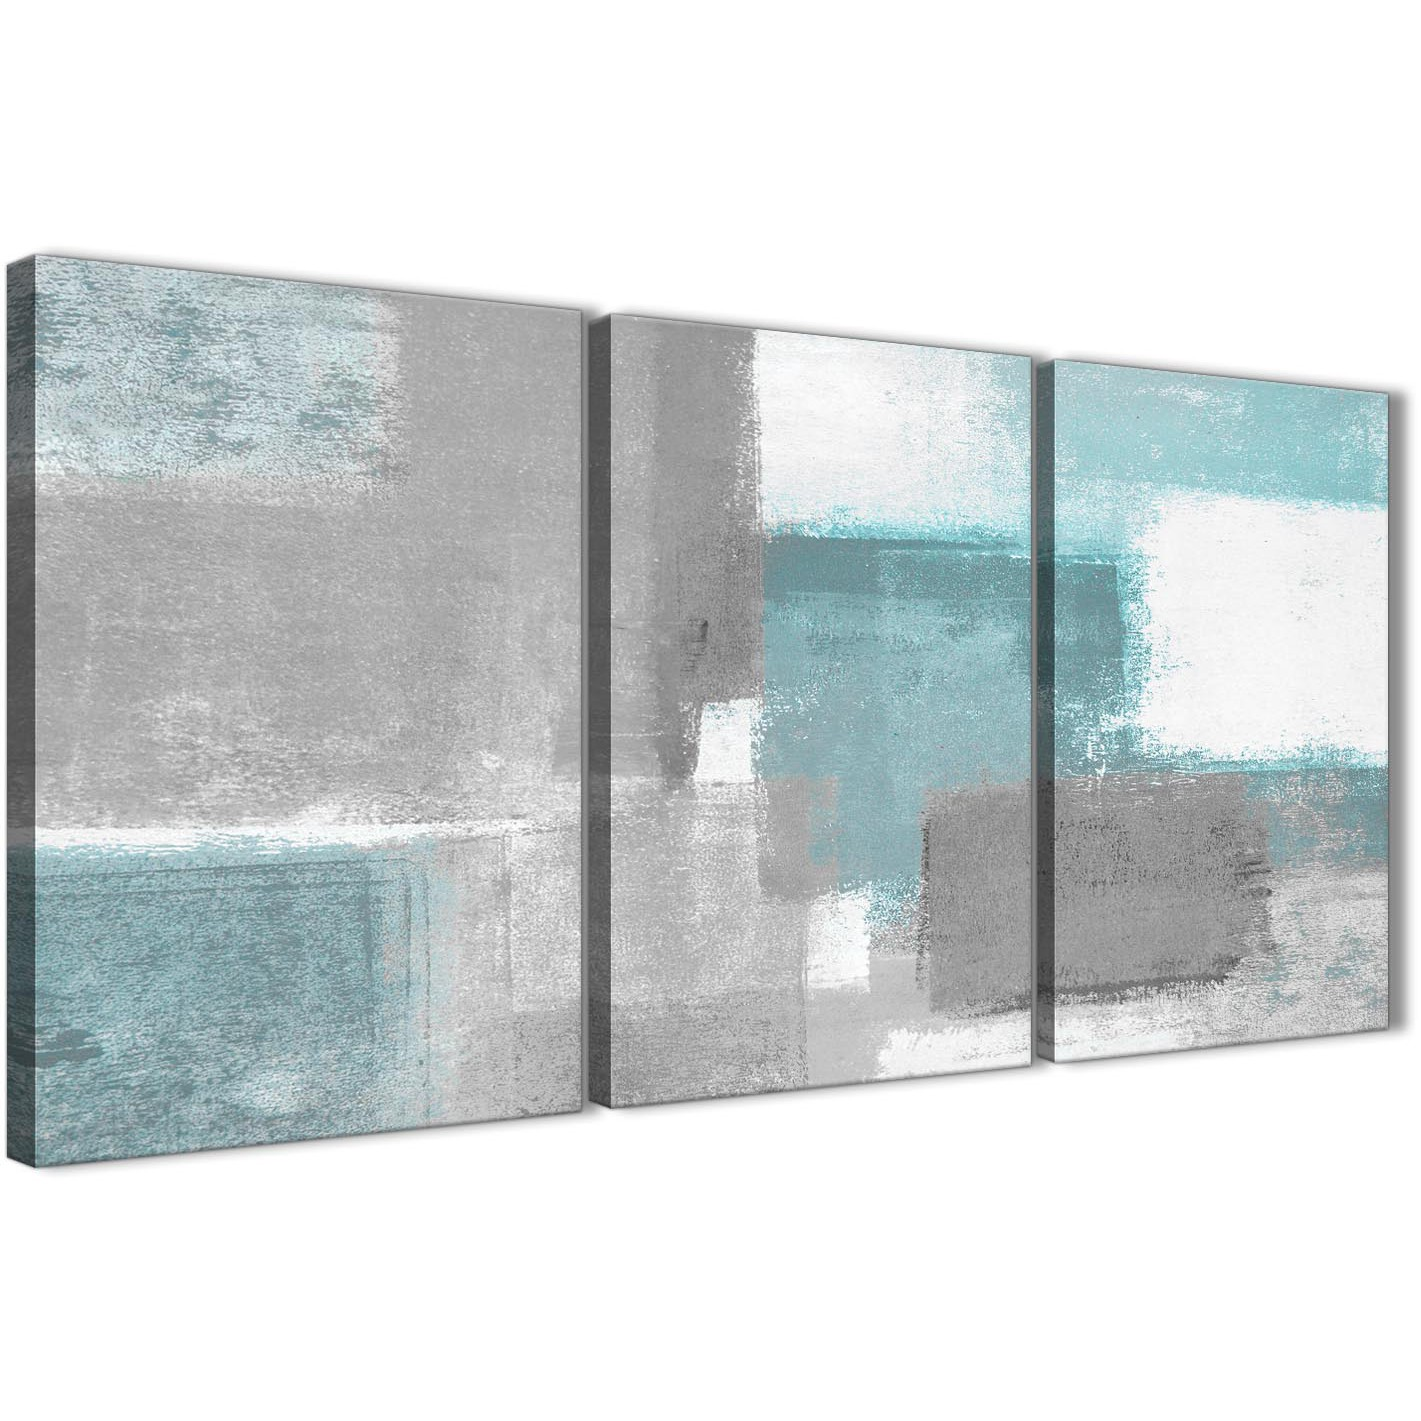 3 Panel Teal Grey Painting Living Room Canvas Wall Art Decor ...